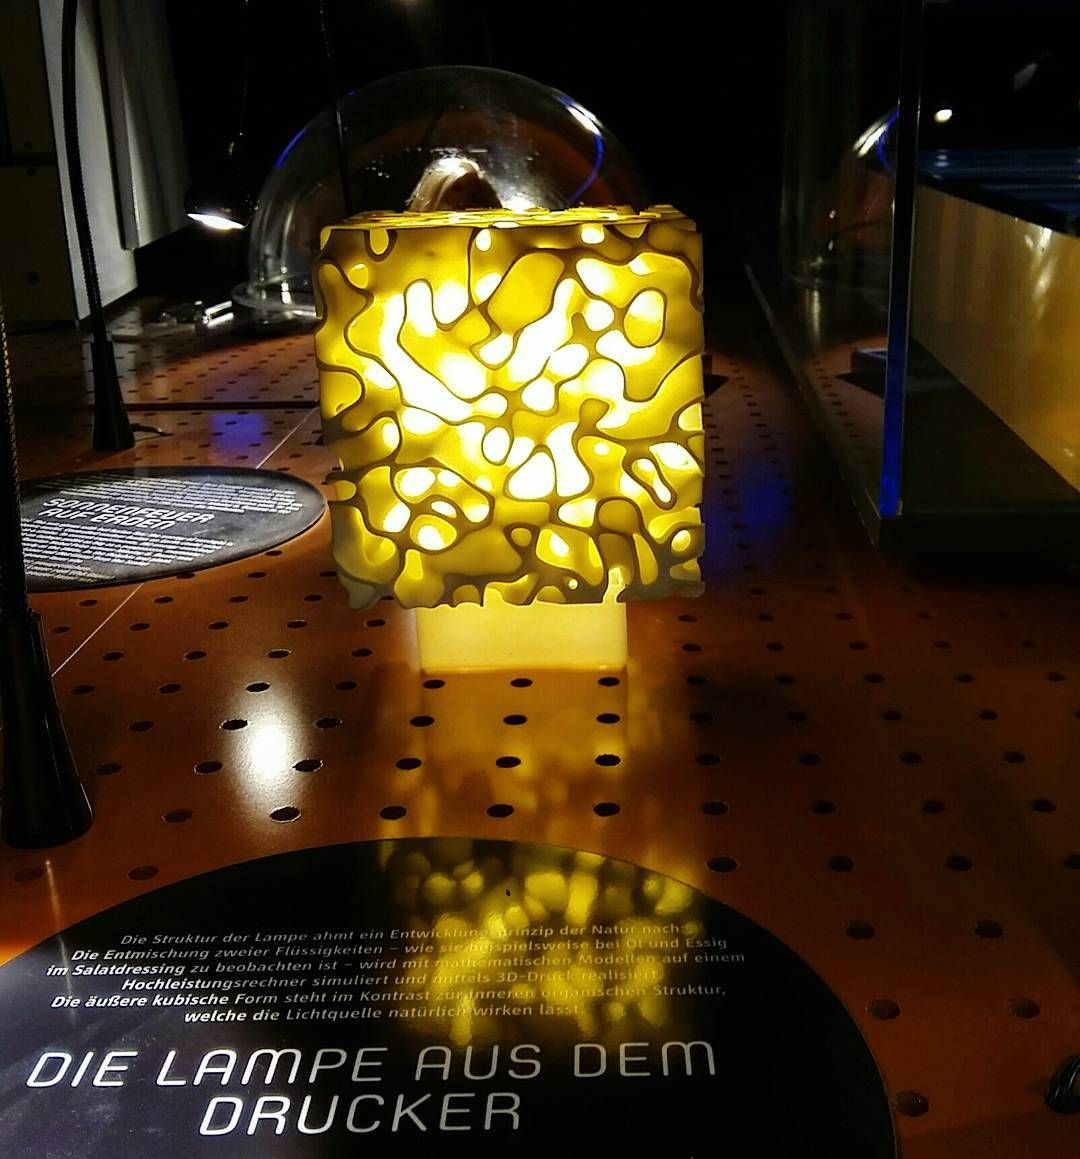 Something we liked from Instagram! Technische Sammlung Dresden A lamp made with a 3 D printer... #3dprinter#3ddruck#lamp#light#licht#technology#technologie#dresden#deutschland #ig_deutschland#instagramde by mela.lichtbild check us out: http://bit.ly/1KyLetq